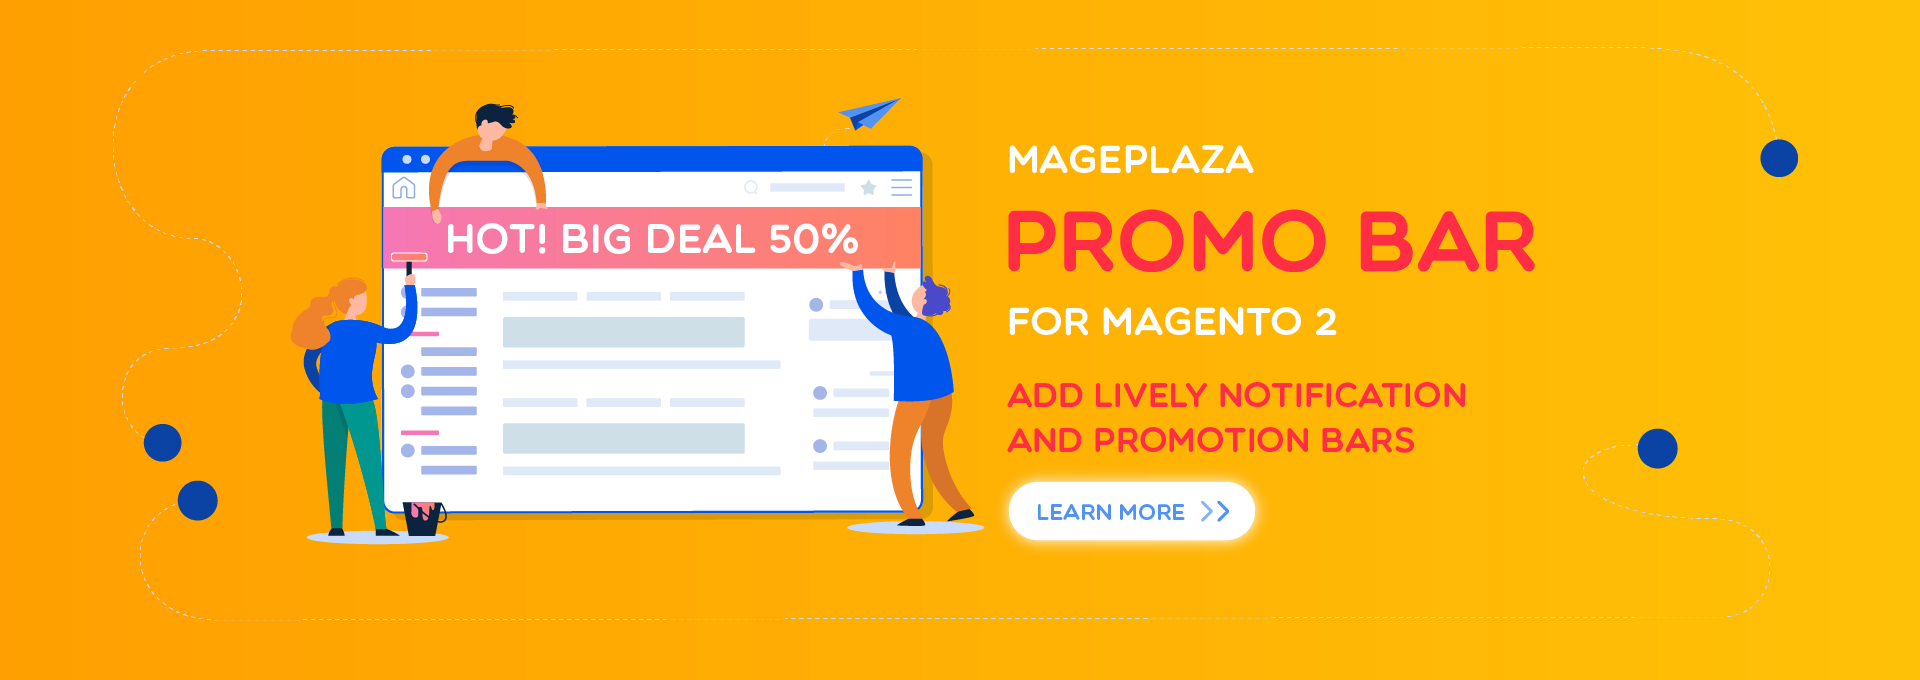 Show lively notifications and promotions with Promo Bar extension